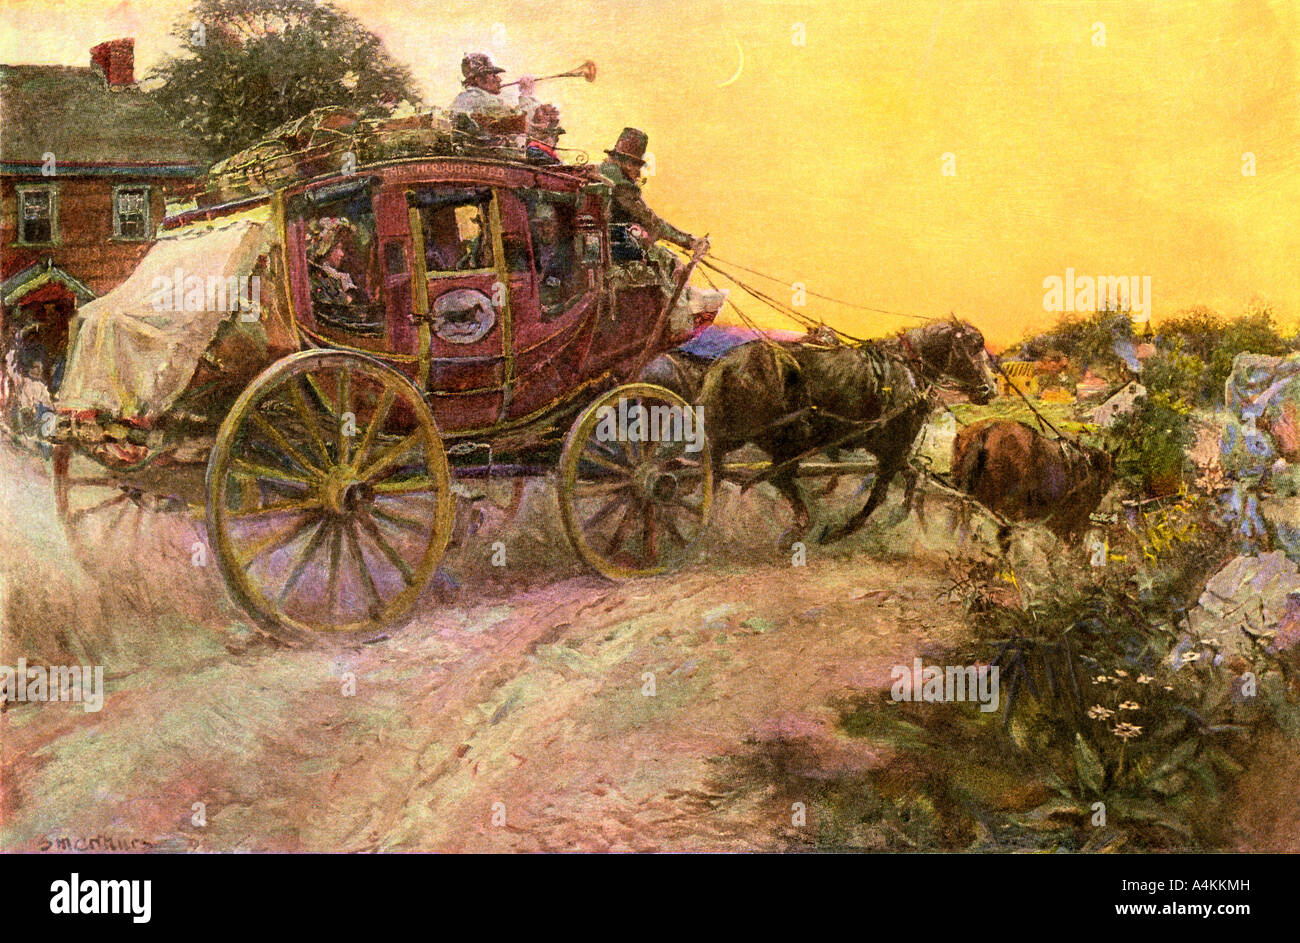 Evening stagecoach arriving in a village with the mail in the early 1800s - Stock Image